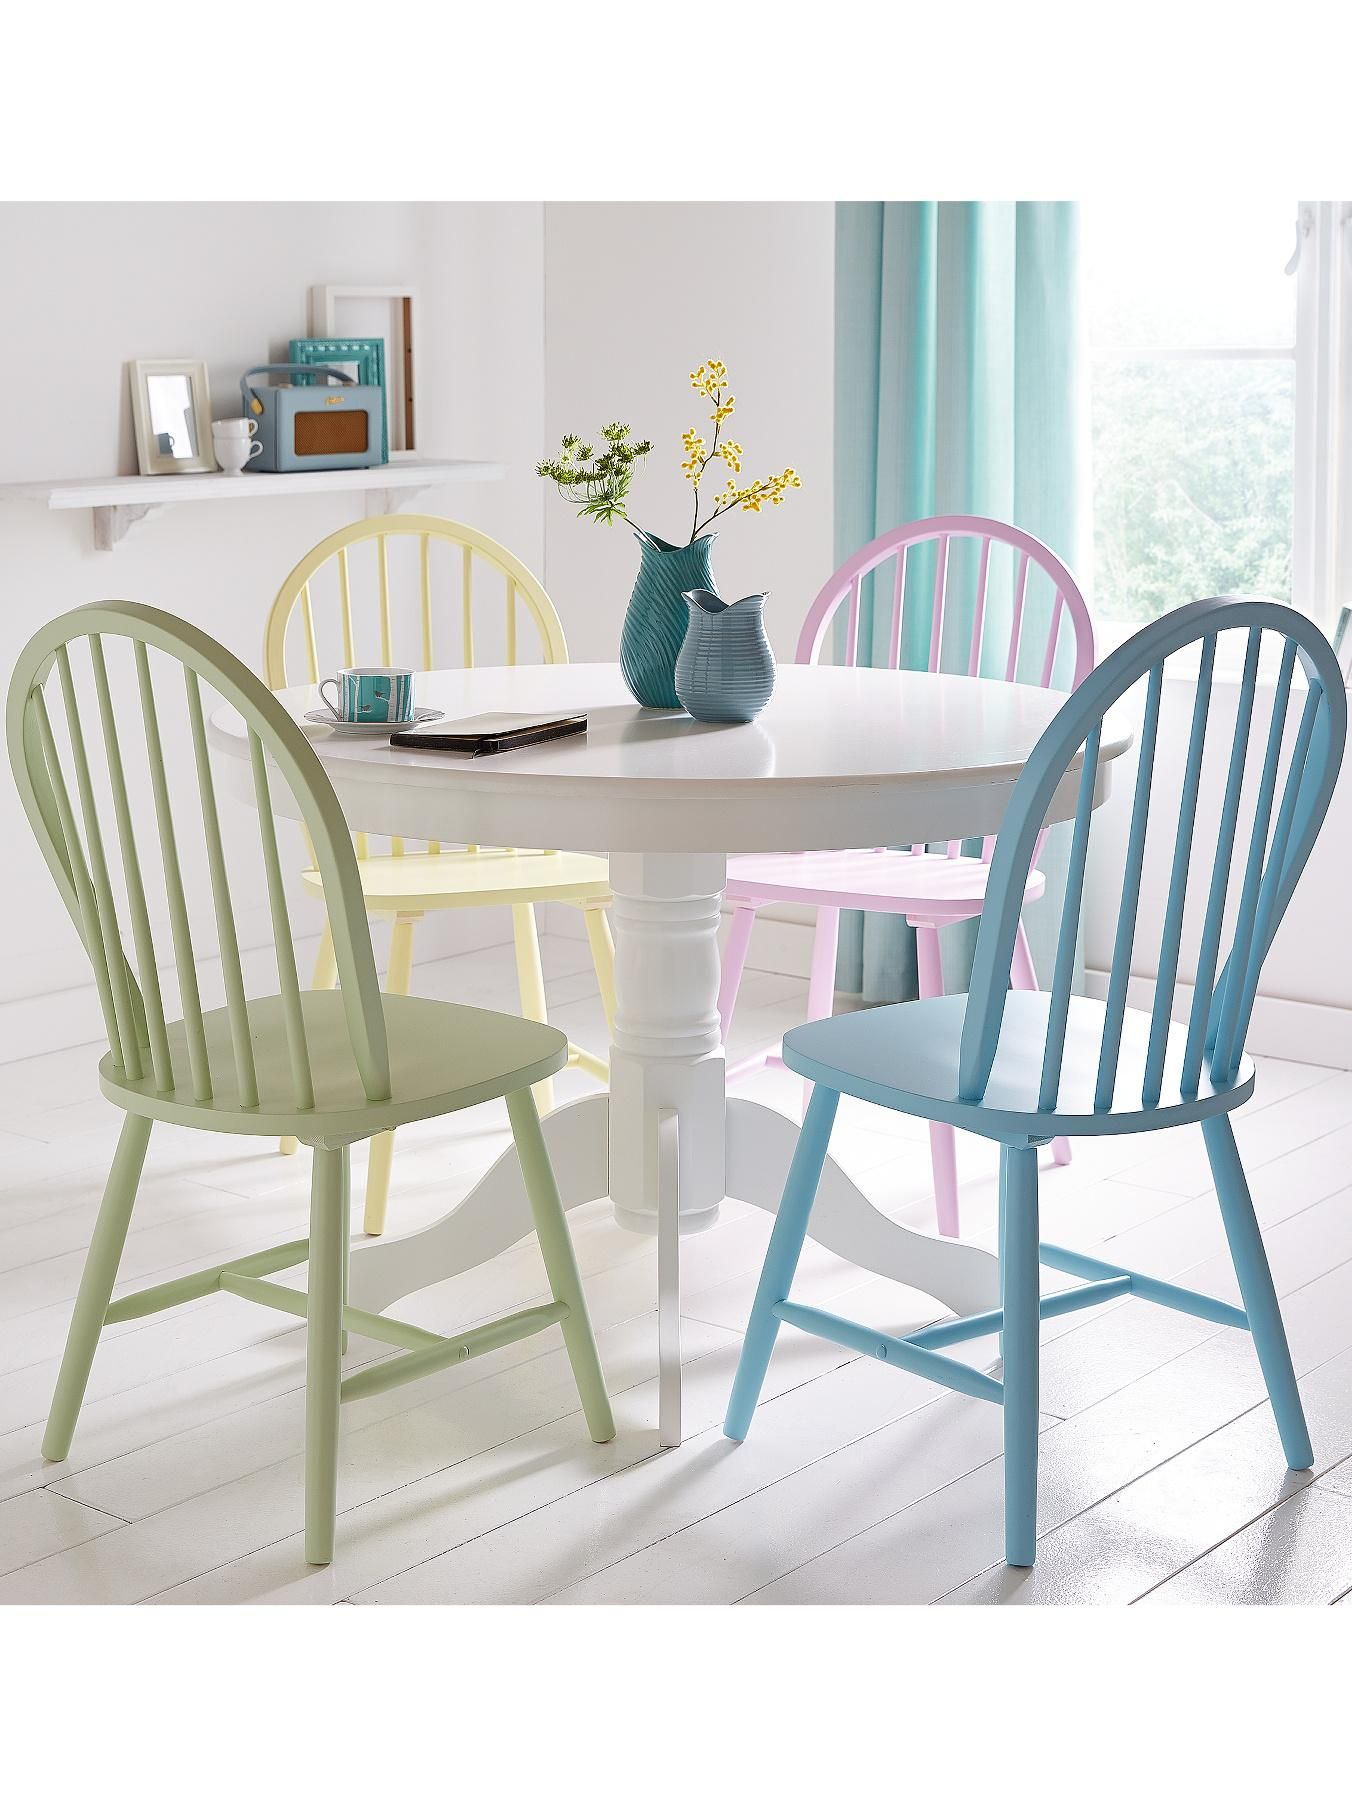 Daisy Cm Round Dining Table Chairs Multi Circular Dining - Circular dining table for 4